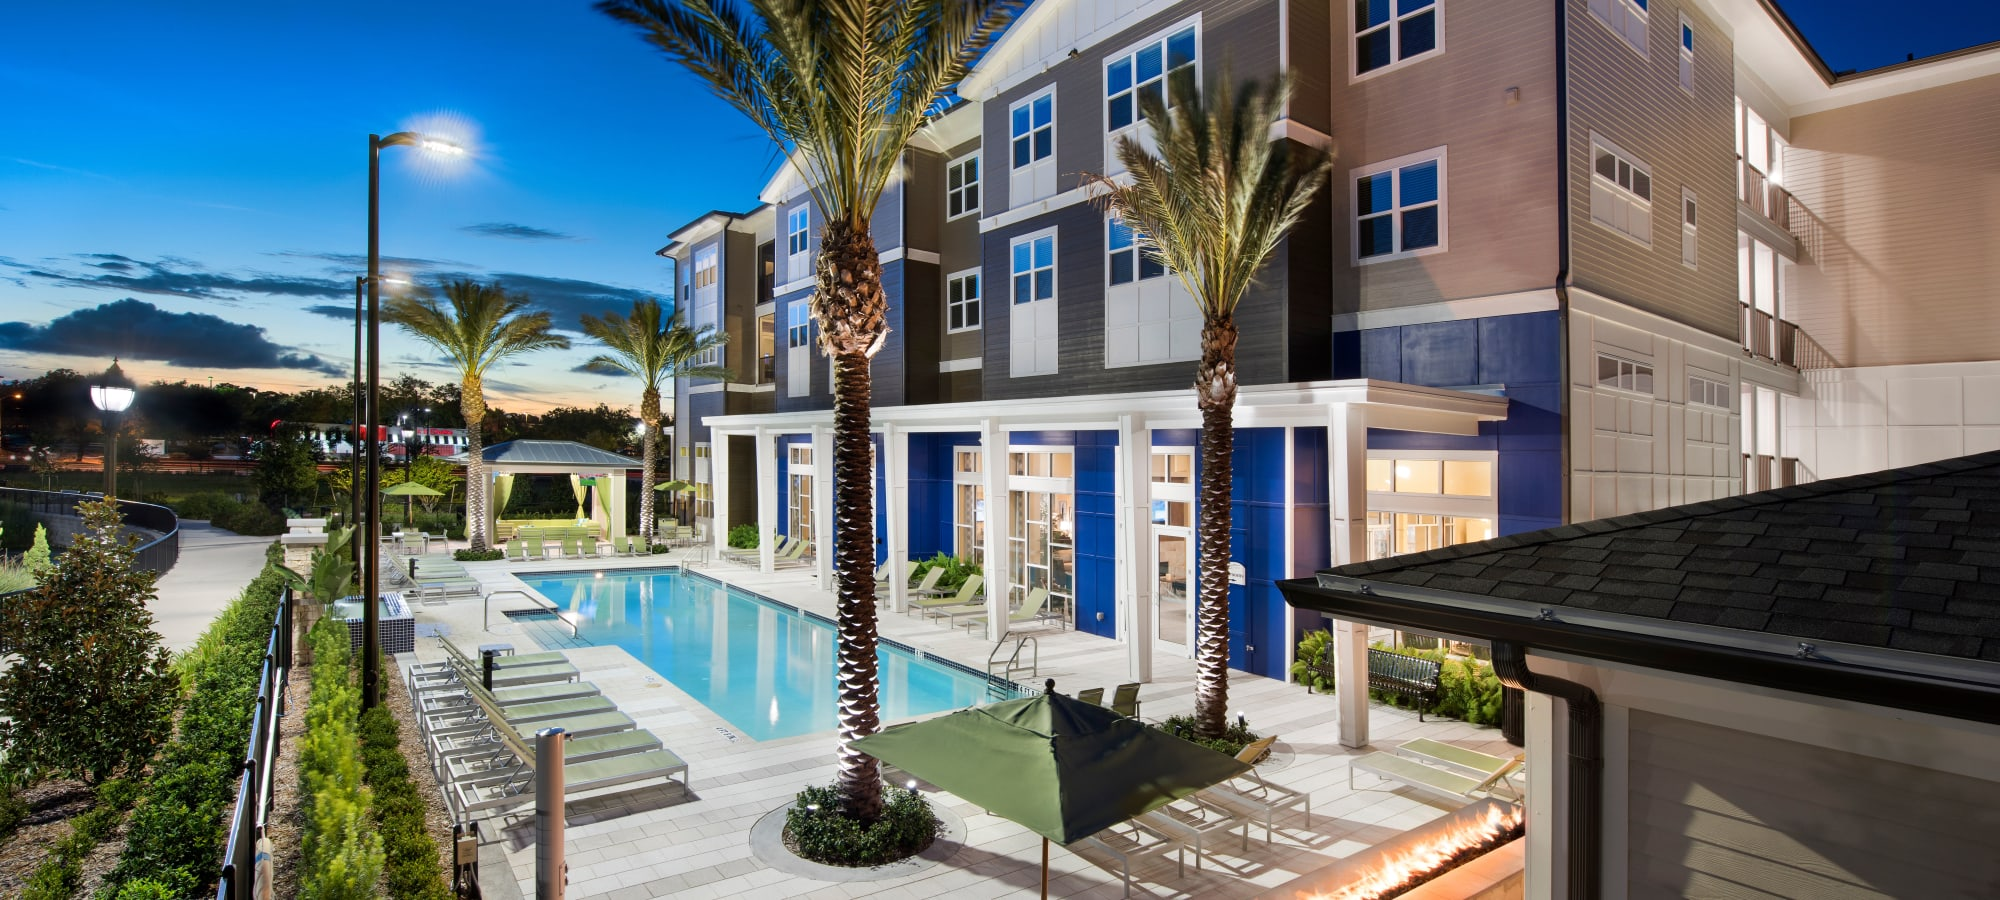 Apartments at Integra Lakes in Casselberry, Florida